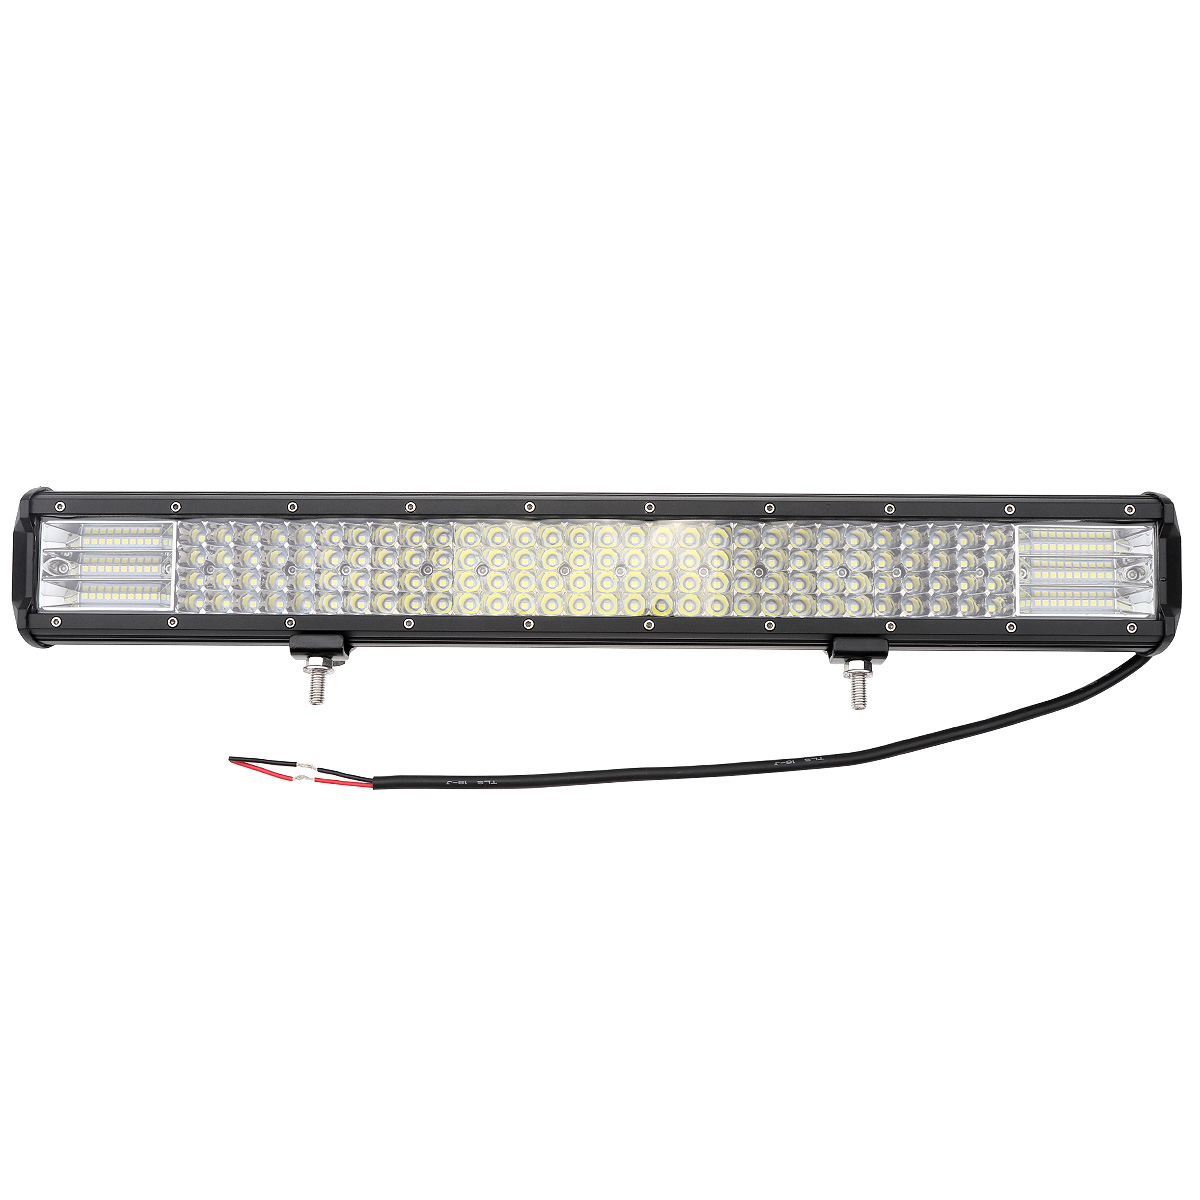 Image 5 - 540W 180Pcs LED Strip LED Light Bar Work Light Combo Beam for Driving Offroad Boat Car Tractor Truck 4x4 SUV-in Car Headlight Bulbs(LED) from Automobiles & Motorcycles